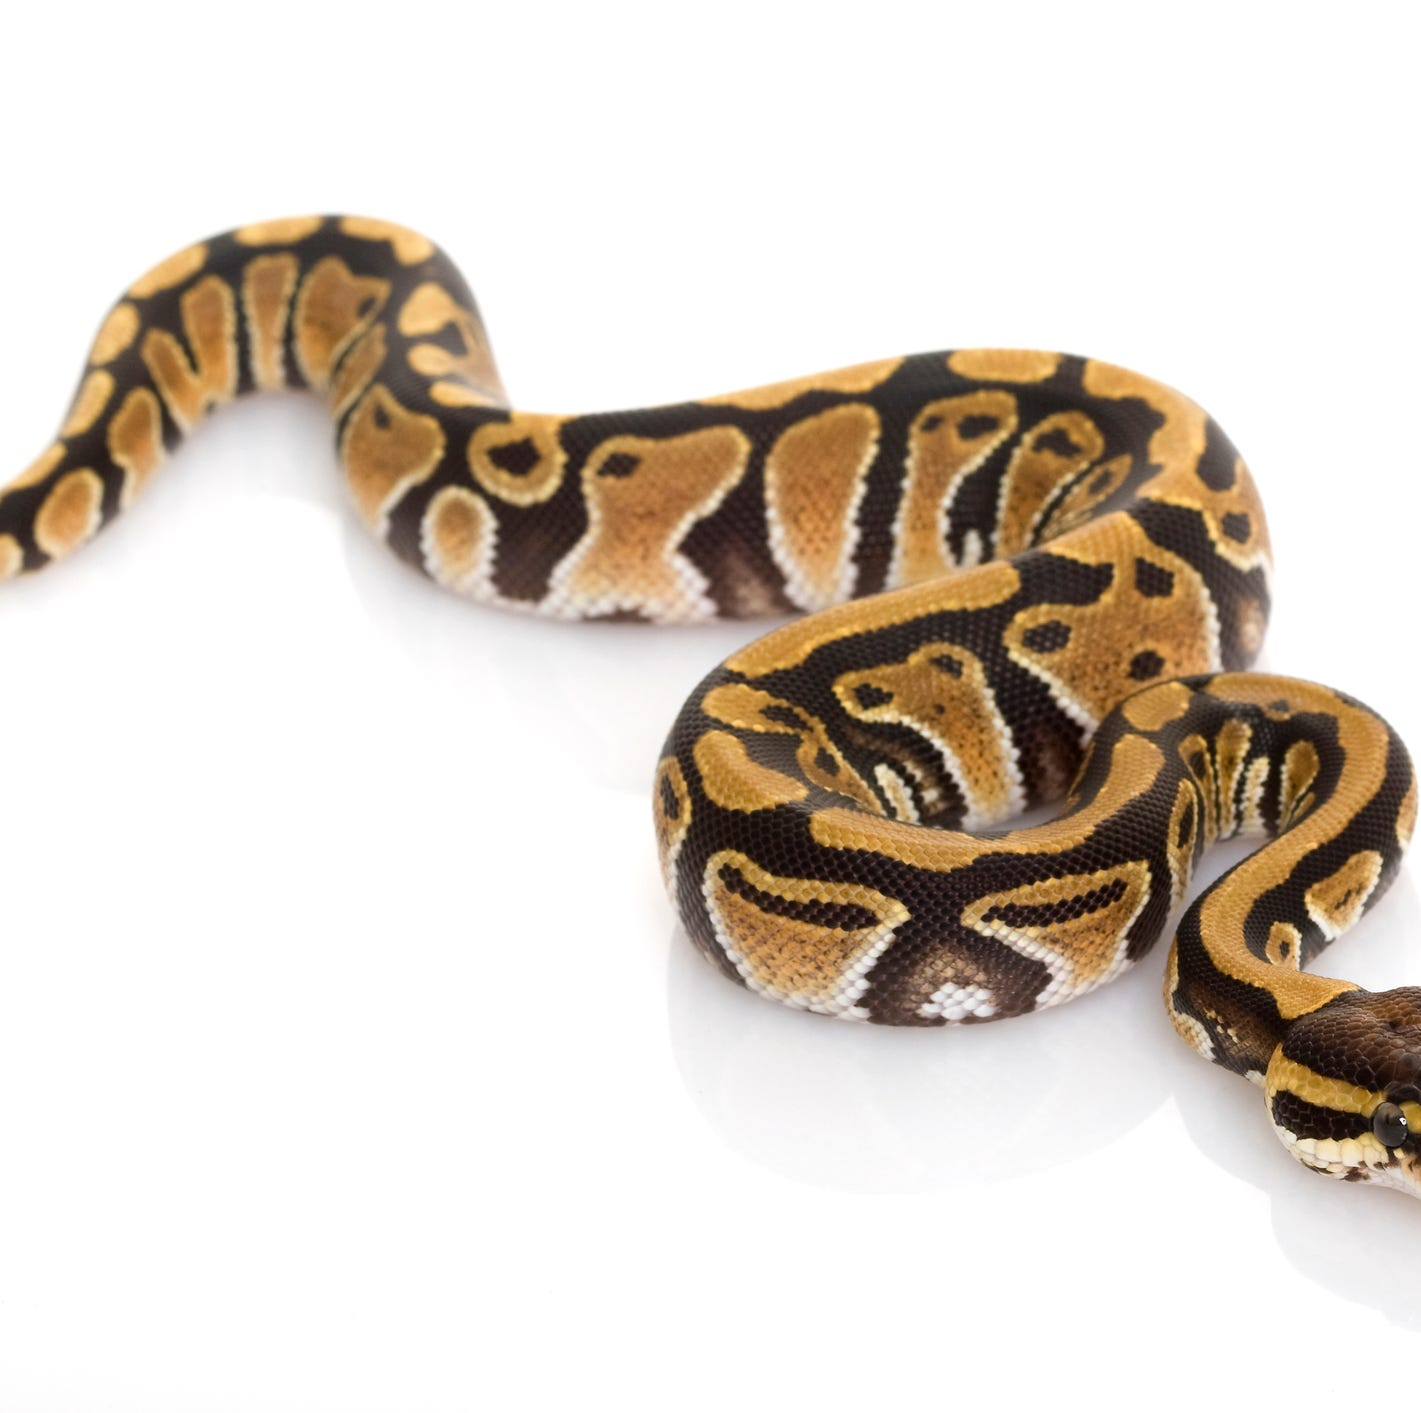 Report: Man steals python from Rockwood pet store by stuffing it in his pants